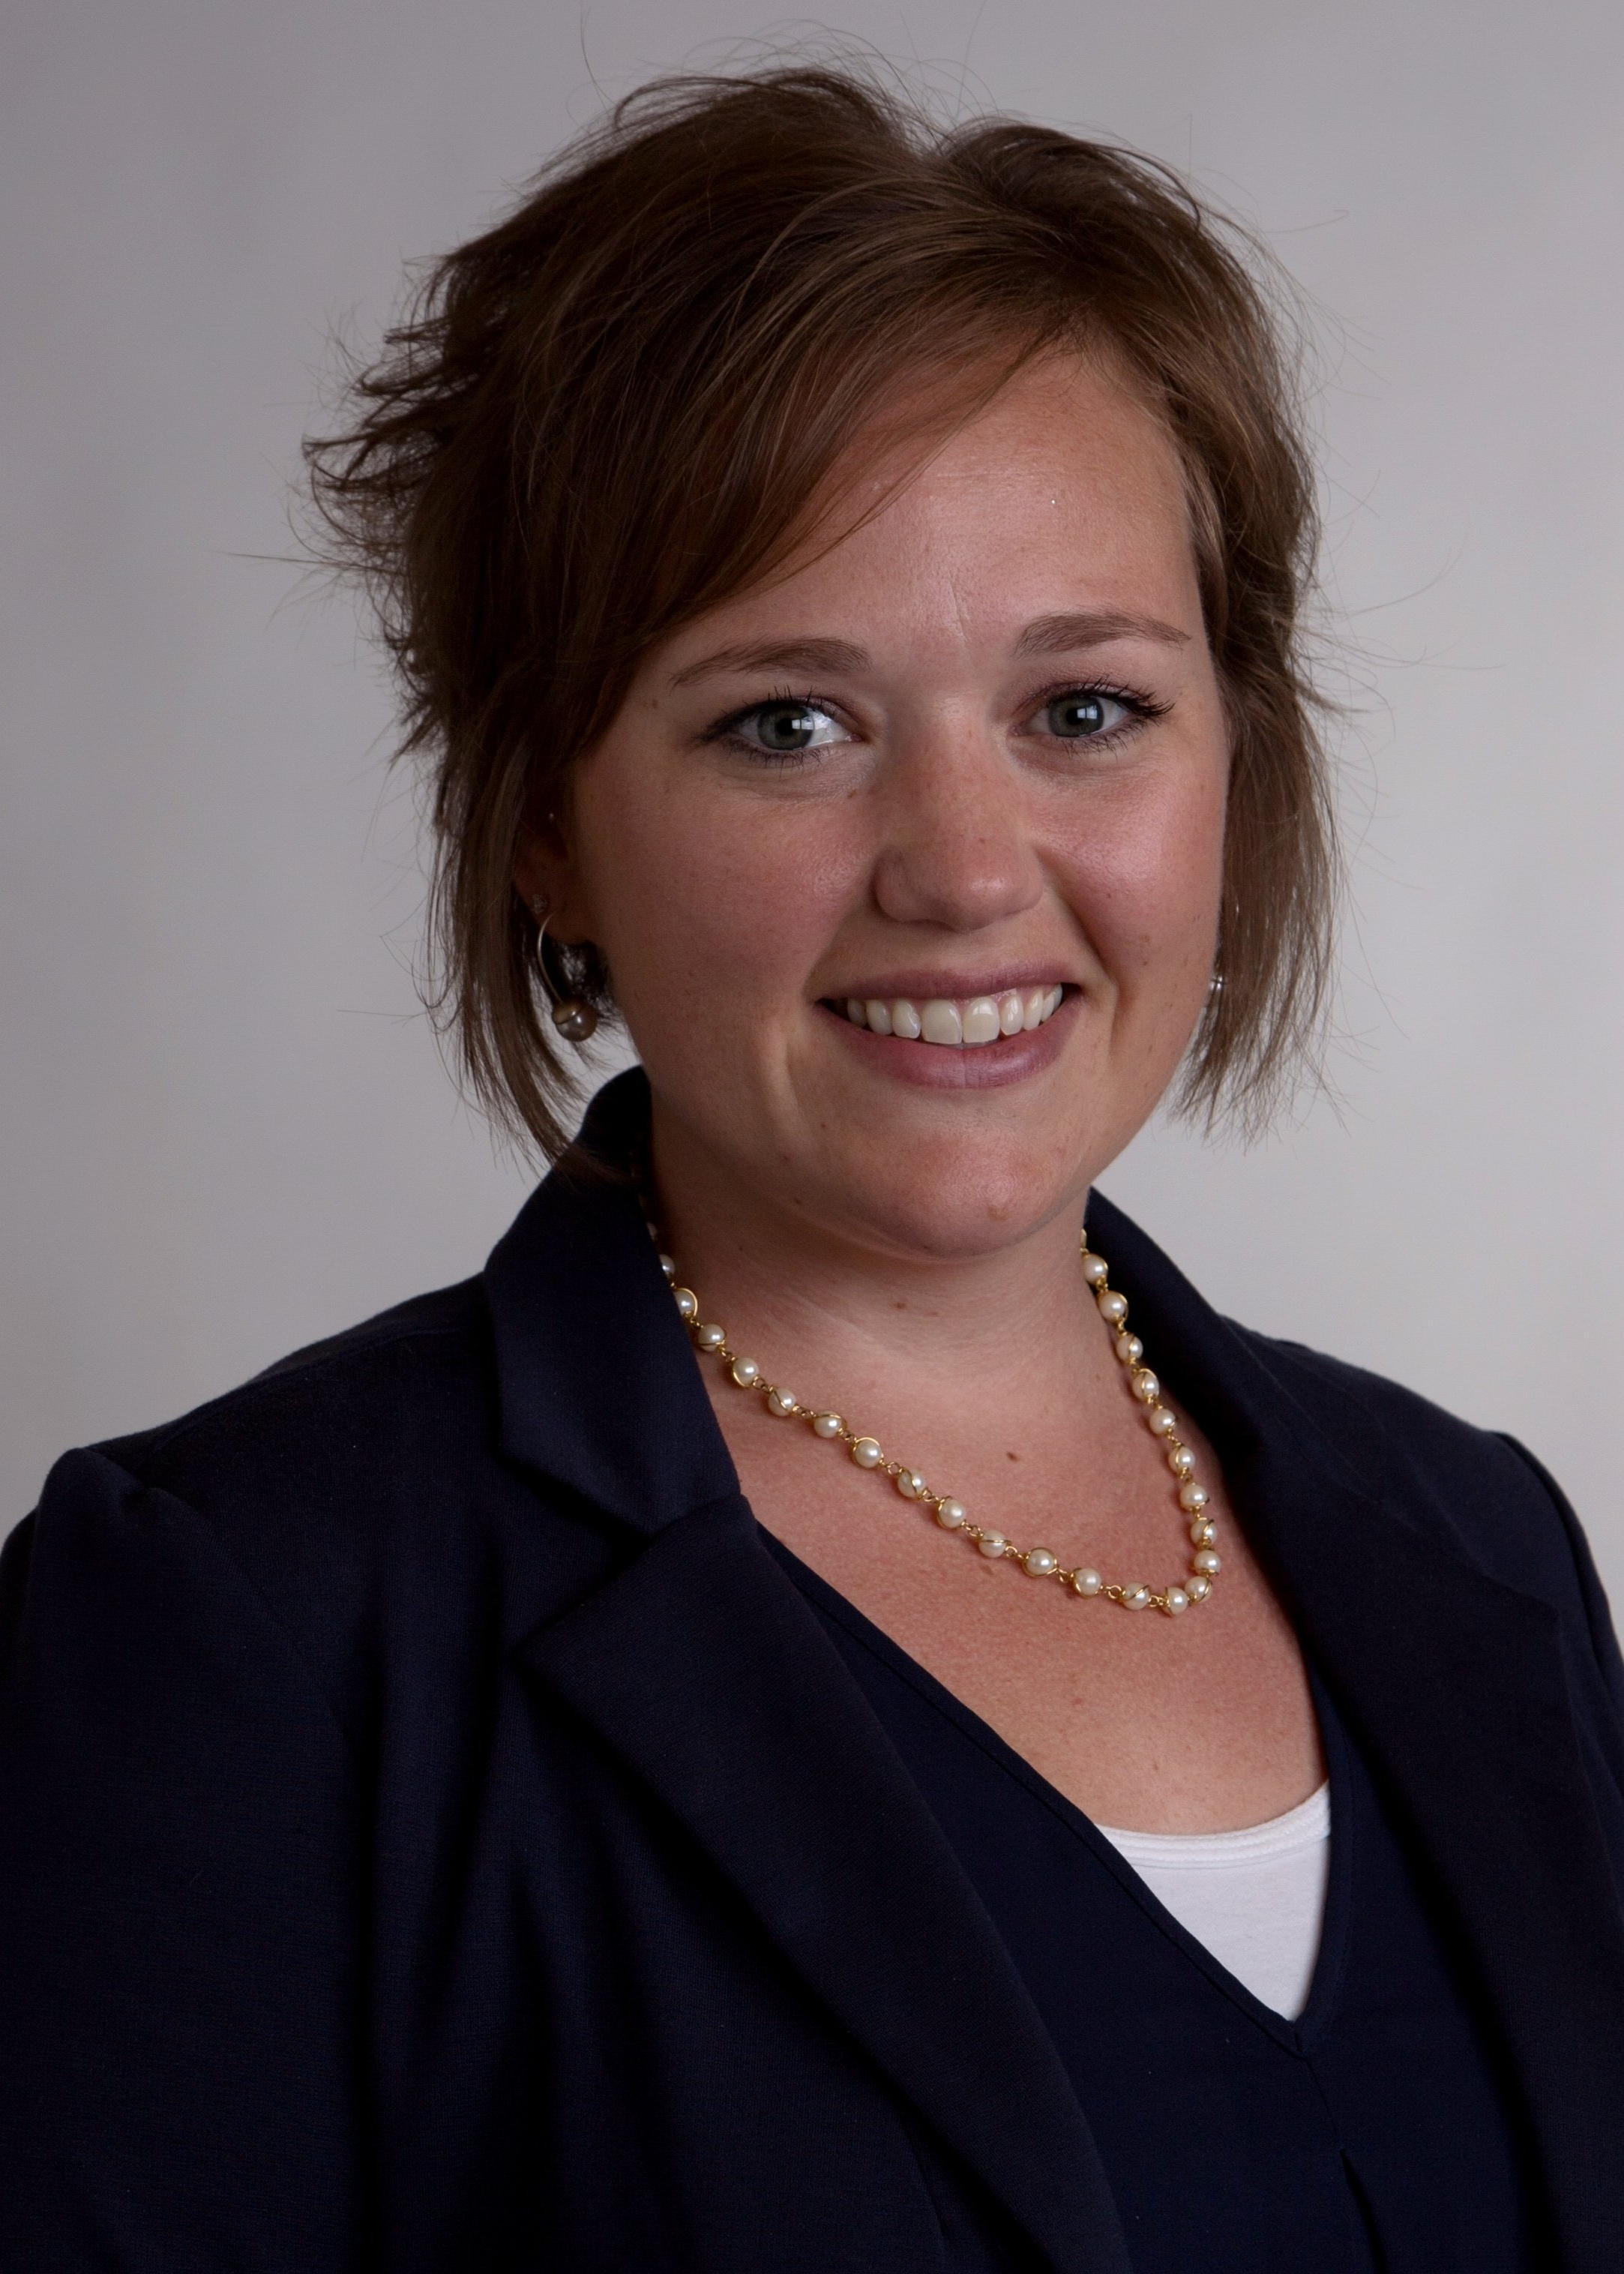 Renee Sedlacek, M.A. - Director of Community Engagement & Service Learning